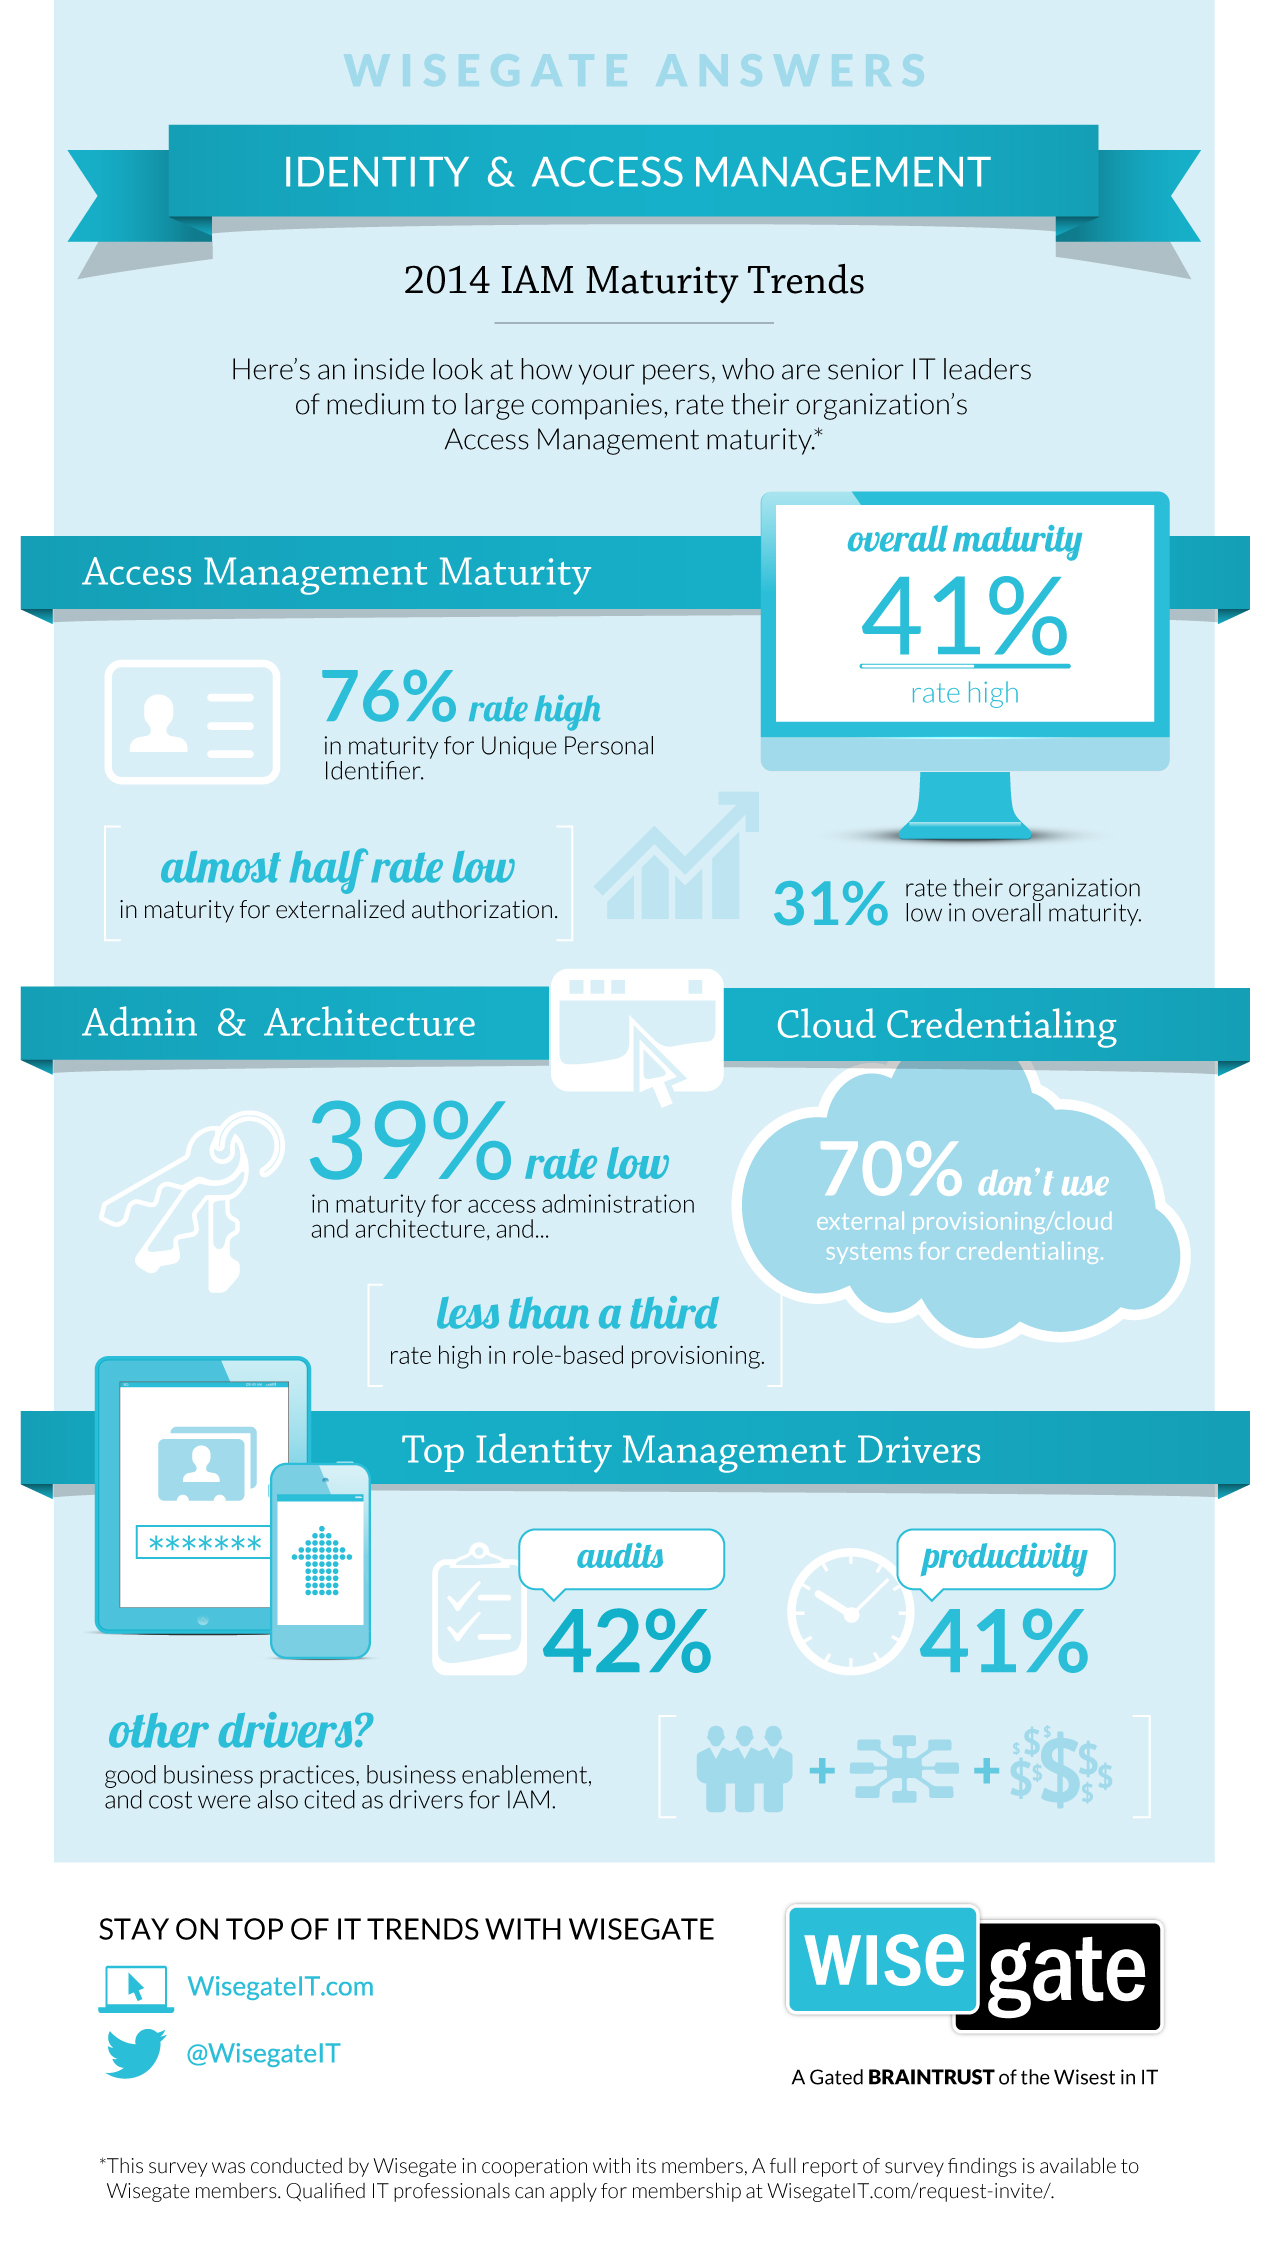 Infographic highlights key results from Wisegate's 2014 Identity and Access Management Maturity survey of senior IT leaders from medium to large companies. (Graphic: Business Wire)